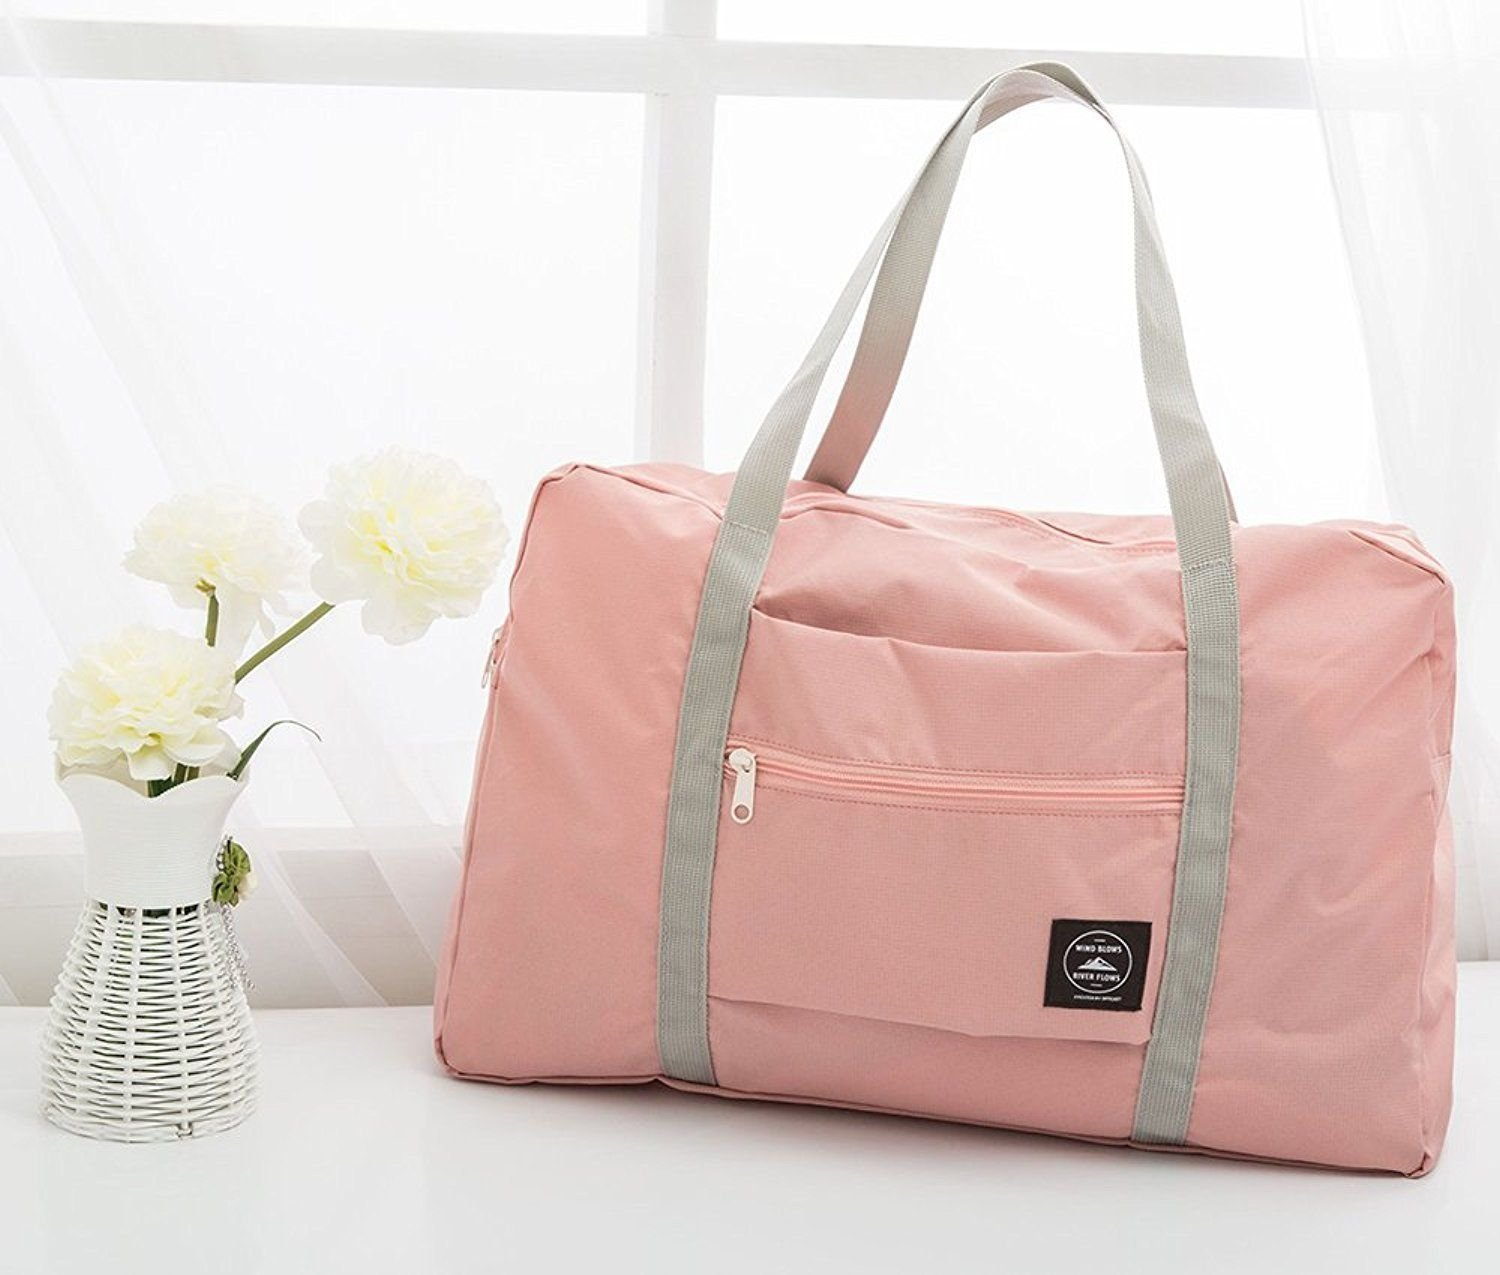 Okdeals Travel Lightweight Foldable Waterproof Carry Storage Luggage Duffle Tote Bag (Pink) by Okdeals (Image #4)